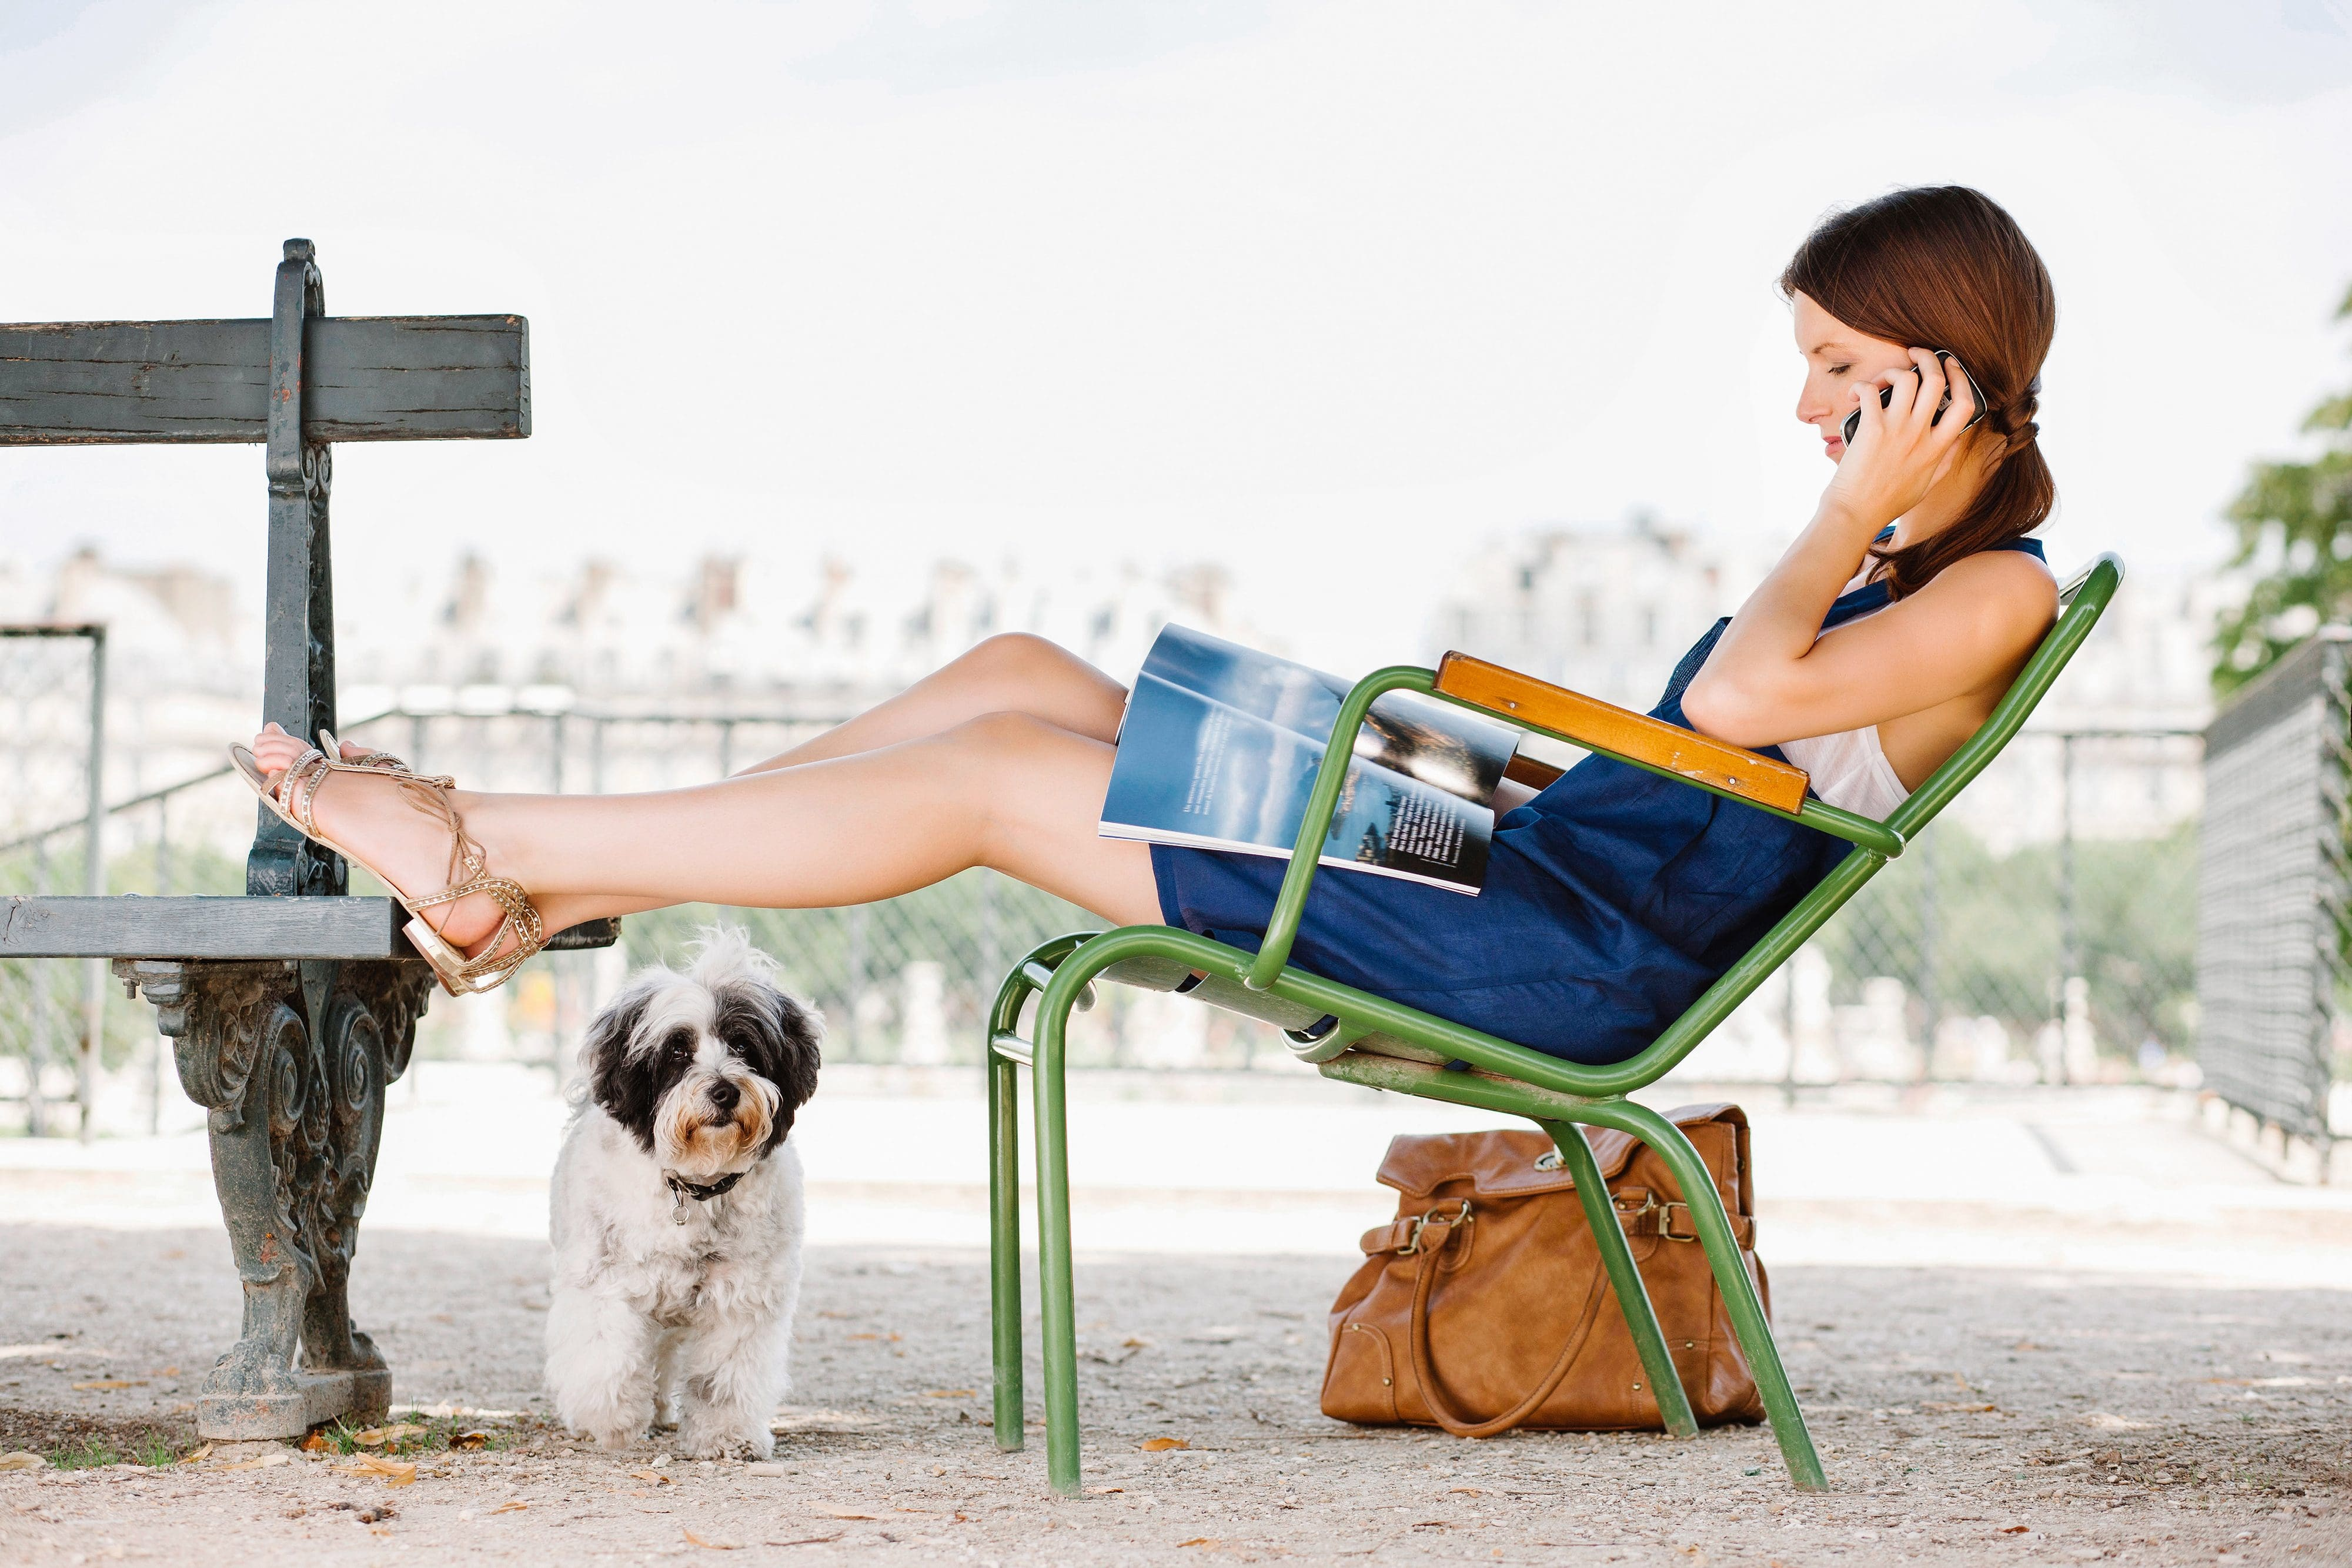 Dog walker relaxing on a bench in a Paris park while her dog stands under her legs